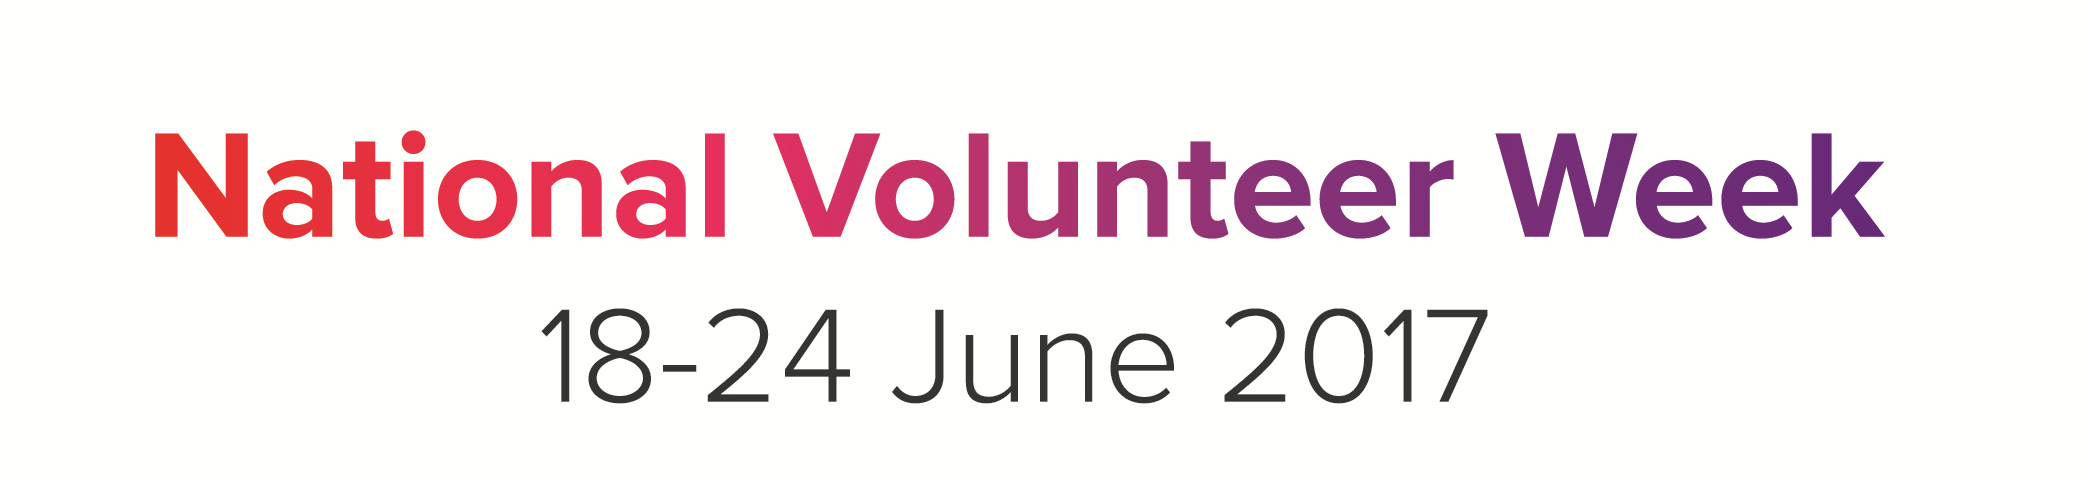 Celebrating our dedicated and skilled volunteers